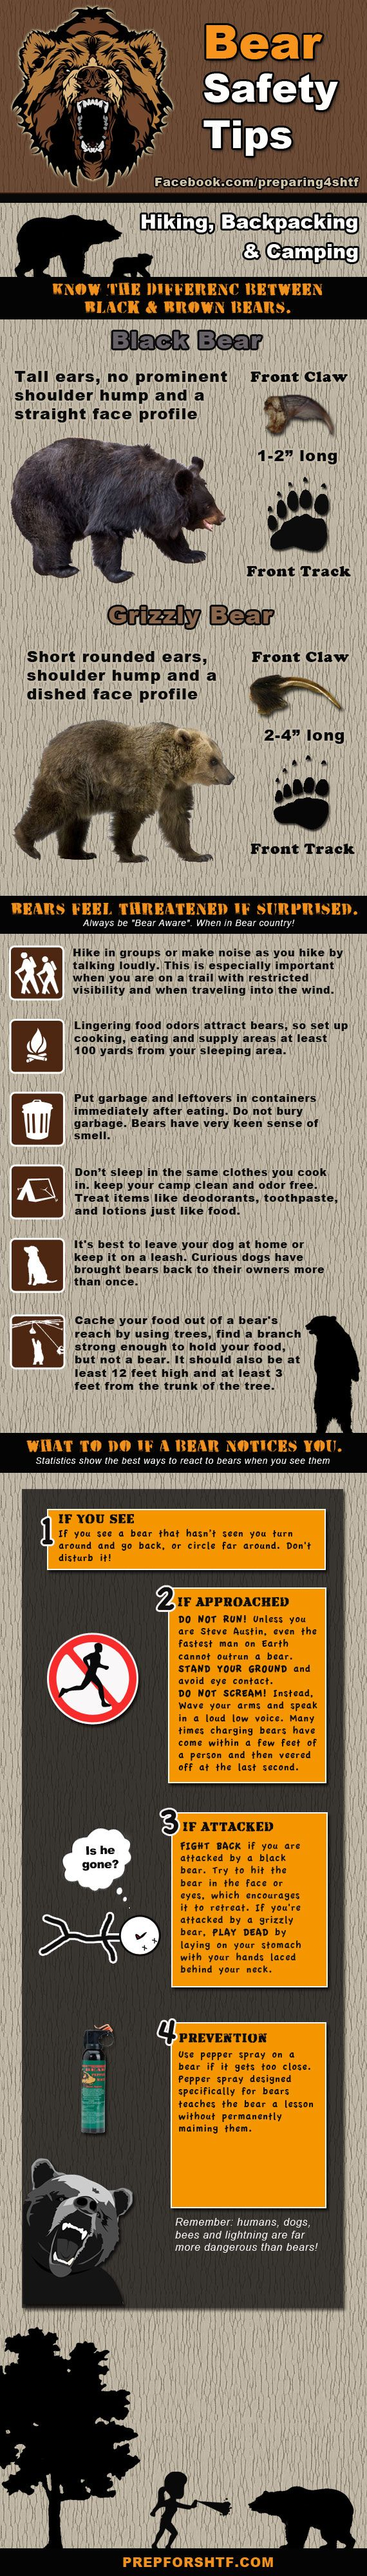 Camping | Tipsögraphic | More camping tips at http://www.tipsographic.com/